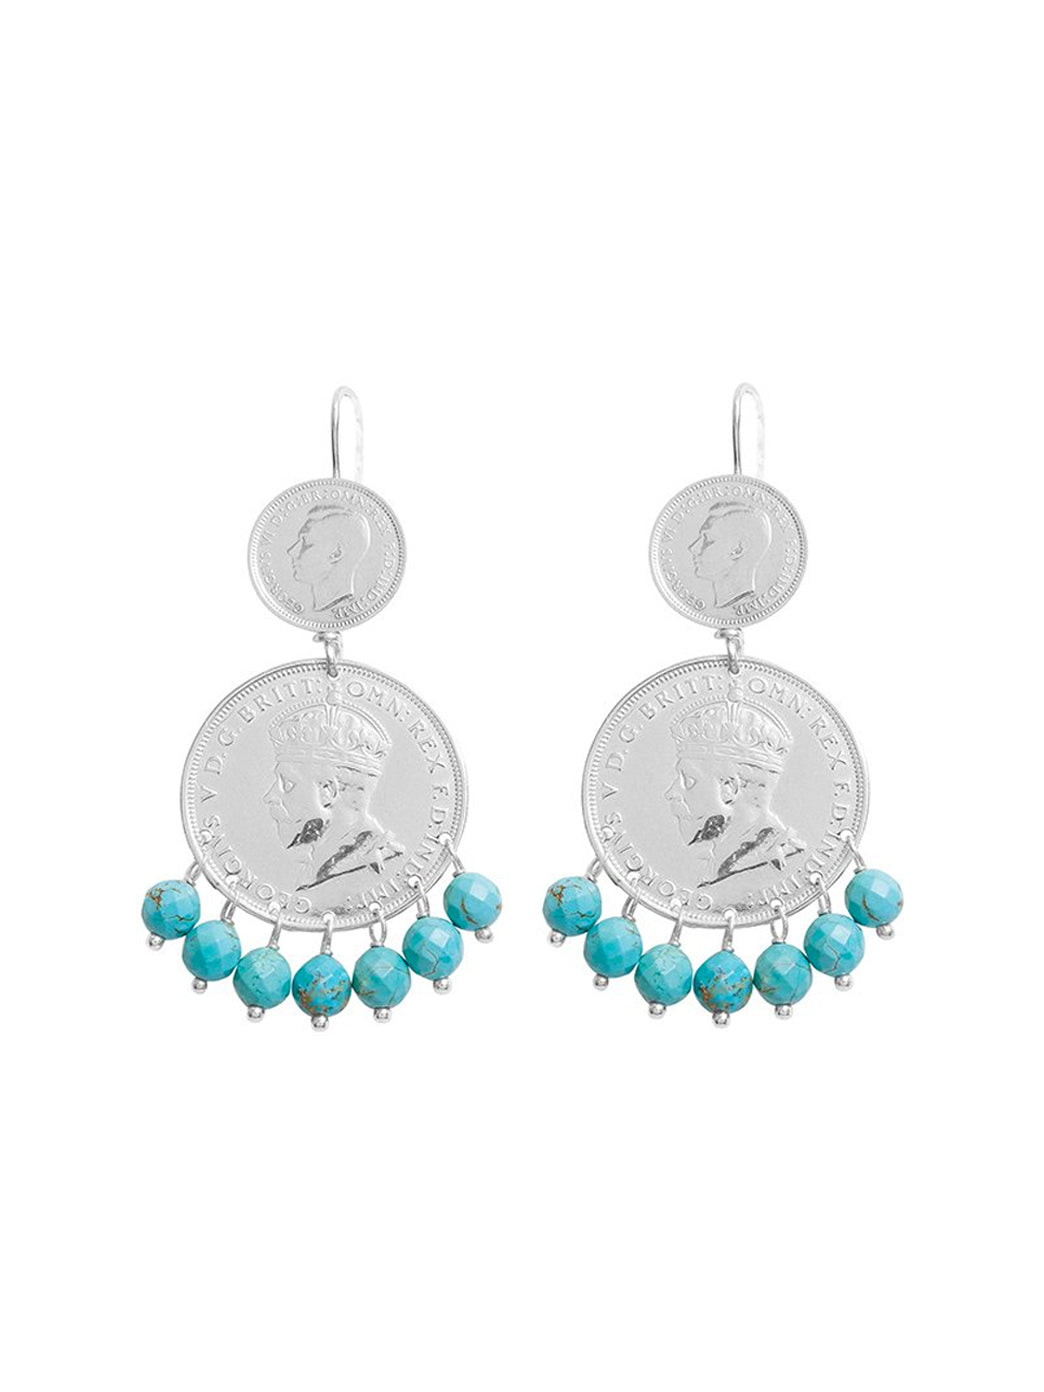 Fiorina Jewellery Mini Marrakesh Earrings Turquoise